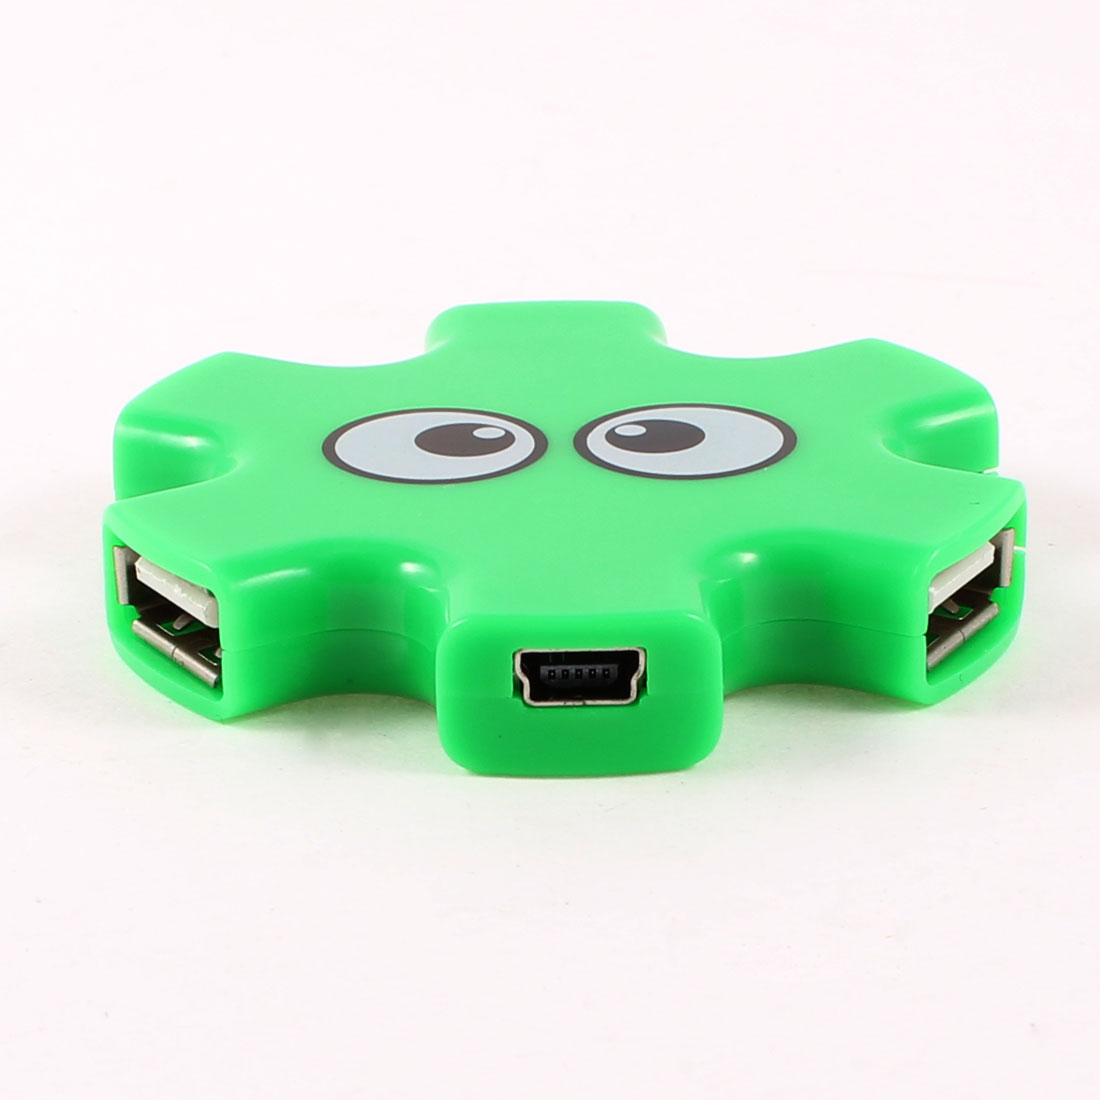 Green Plastic High Speed PC USB 2.0 4-Outport Hub Support WindowsXP 7 Linux 2.4